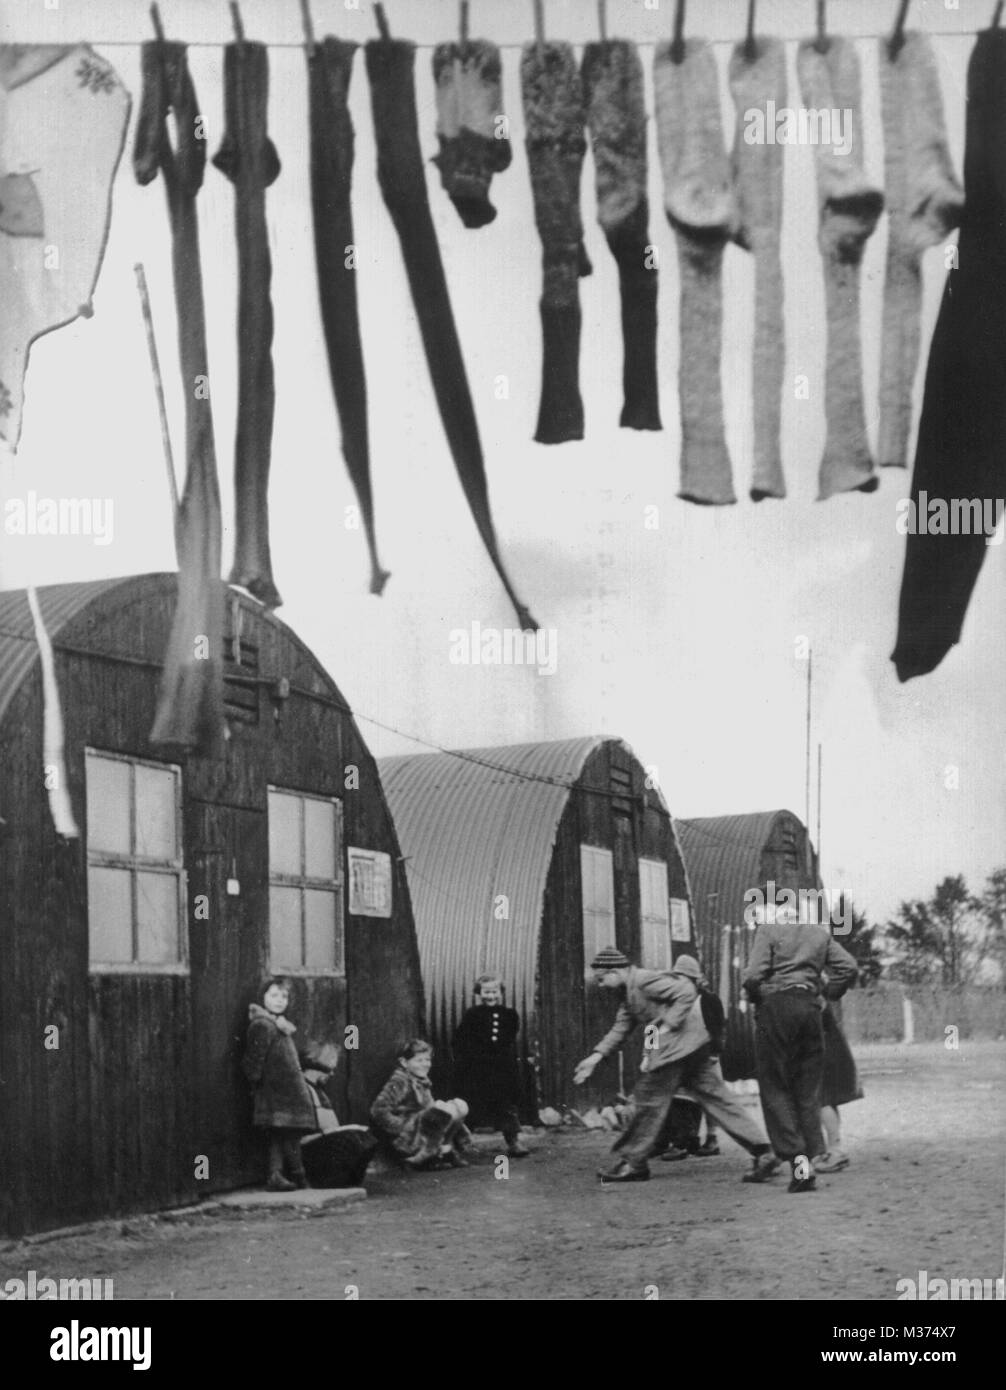 View on a row of nissen huts which have served as emergency shelter during the post-war era.   usage worldwide - Stock Image